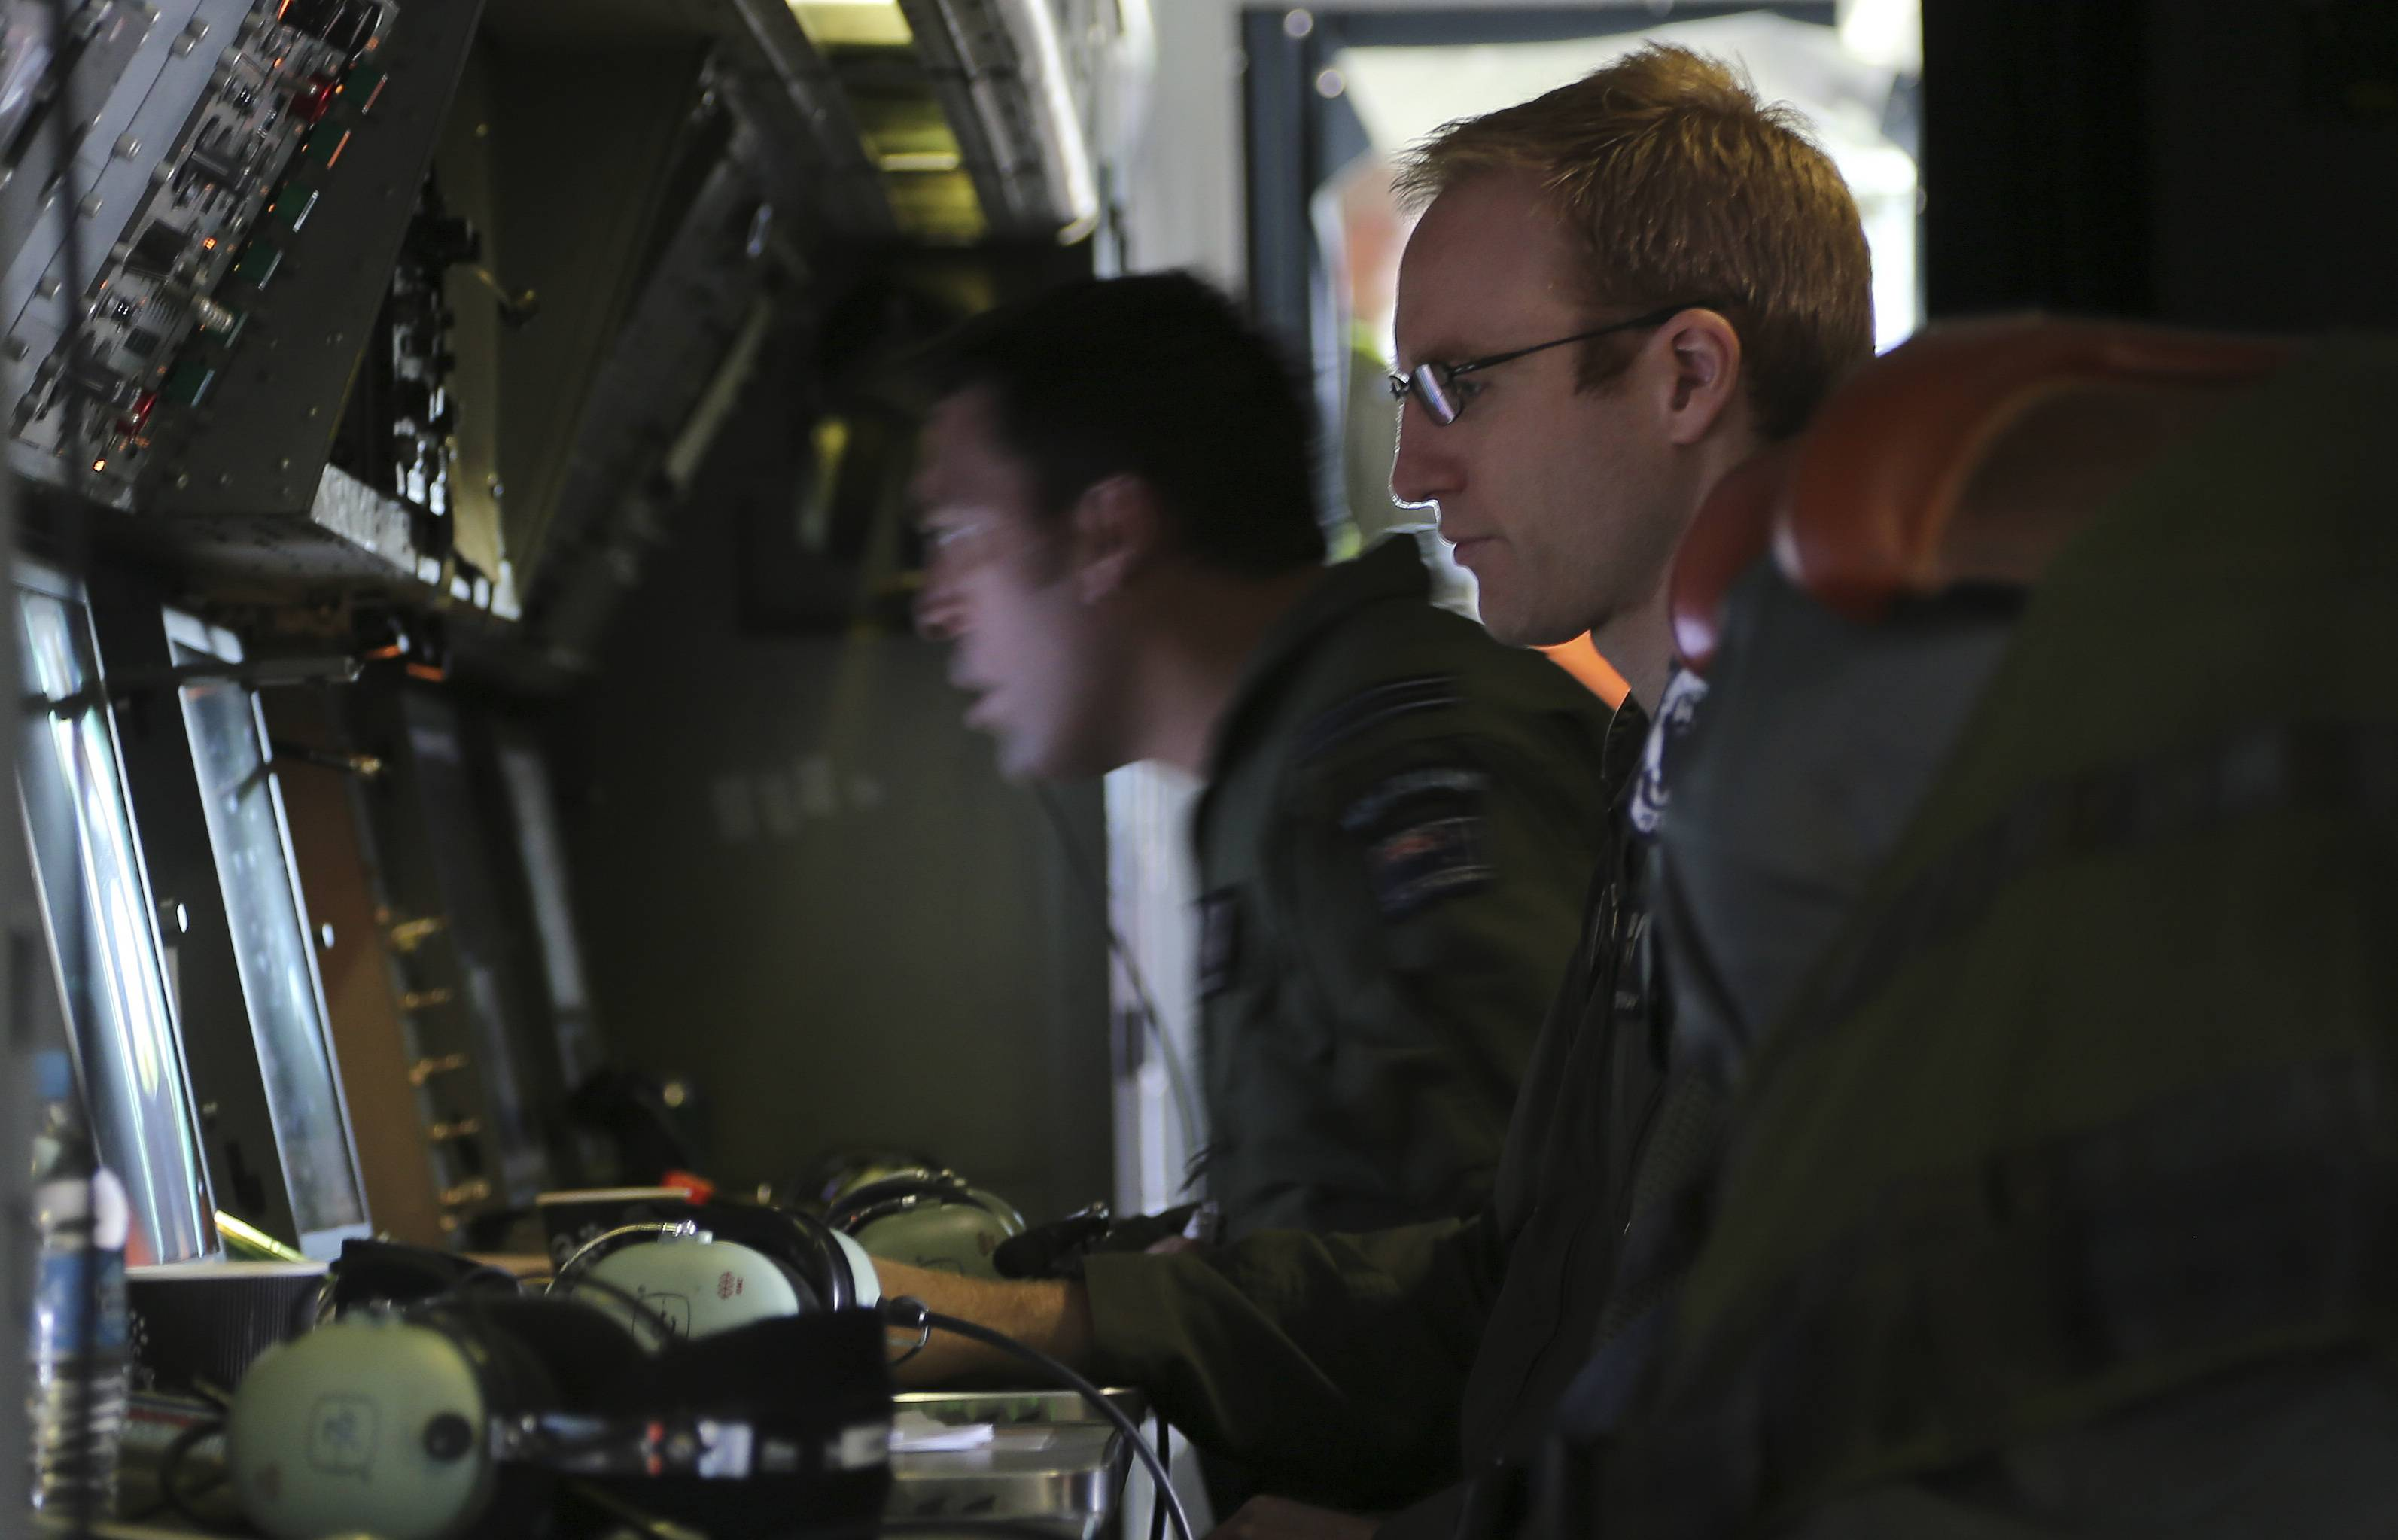 Flight Lieutenant Stephen Graham monitors a TAC station onboard a Royal New Zealand Air Force P3 Orion during search operations for wreckage and debris of missing Malaysia Airlines Flight MH370 in the southern Indian Ocean, near the coast of Western Australia, Friday, April 4, 2014. Ten military planes, four civil jets and nine ships will assist in the search today of 217,000 square kilometers, 1700kms north west of Perth.(AP Photo/Nick Perry/Pool)